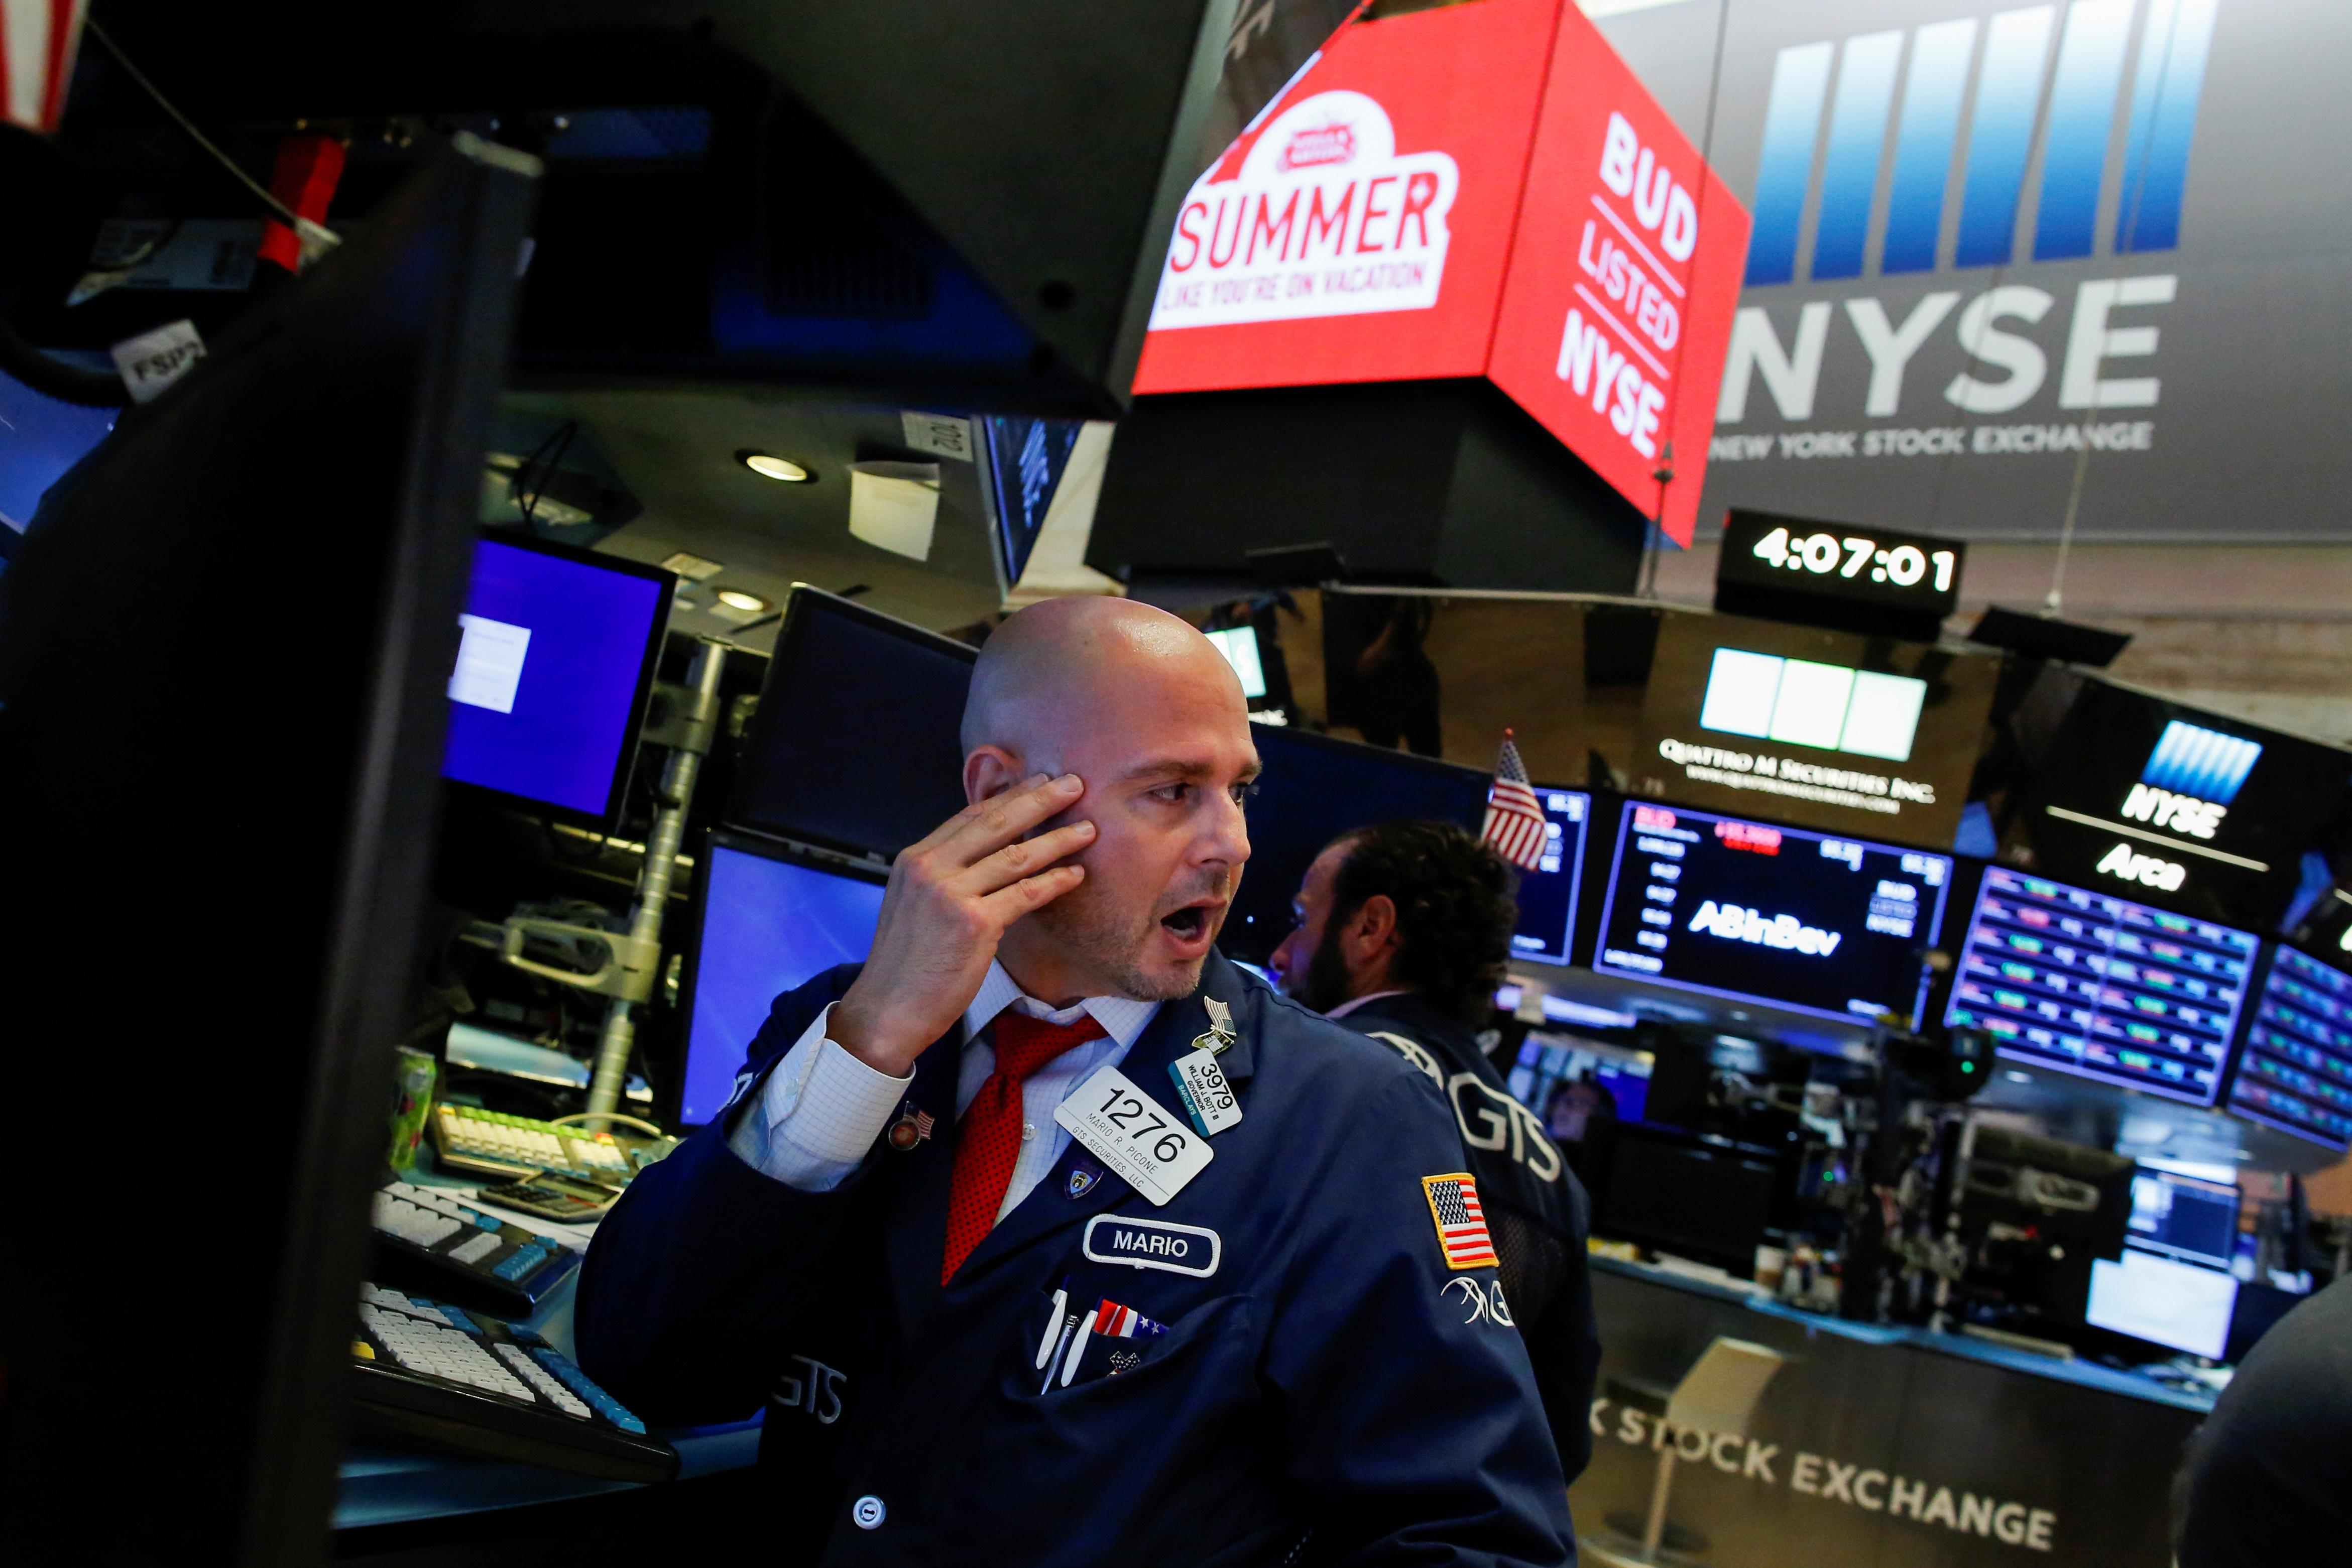 Stock market news: August 22, 2019